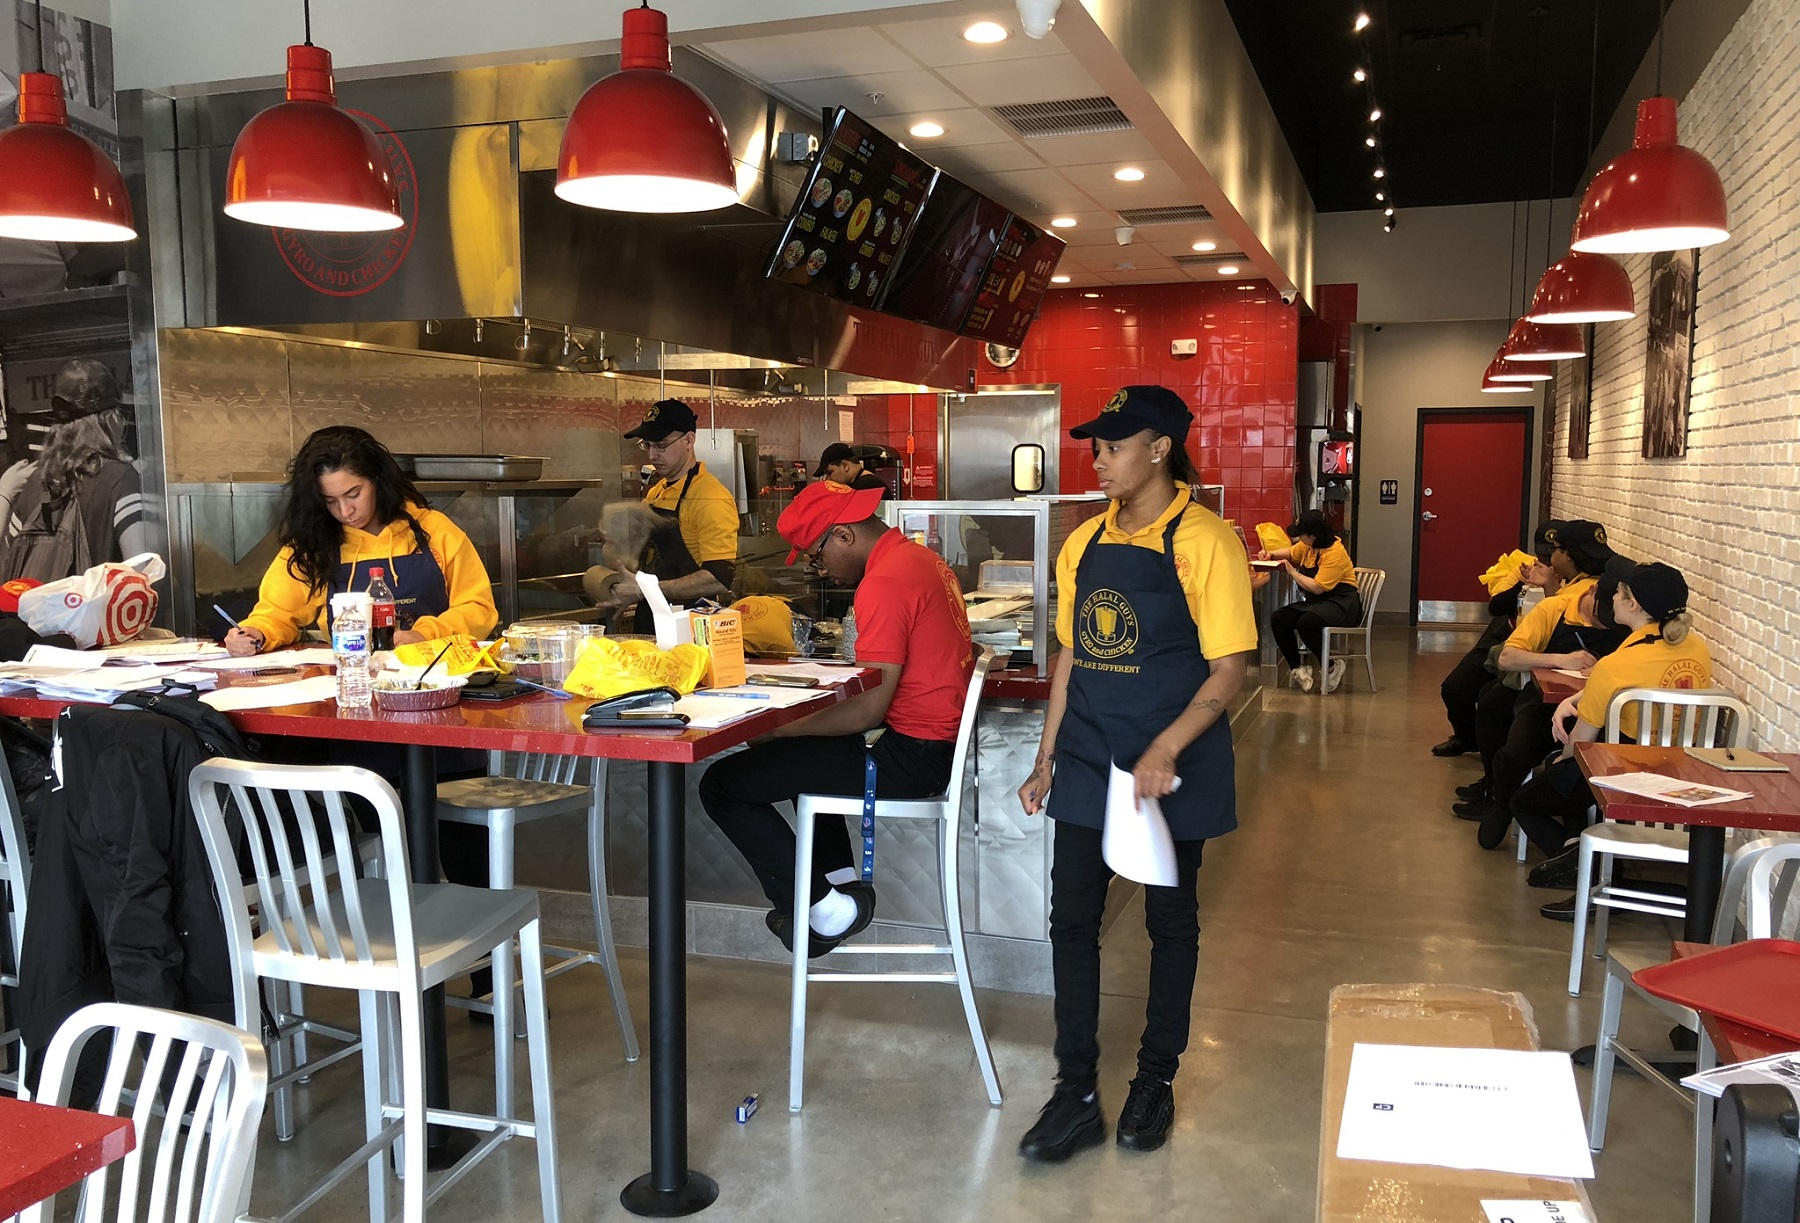 The Halal Guys to open first Buffalo-area location in May – The